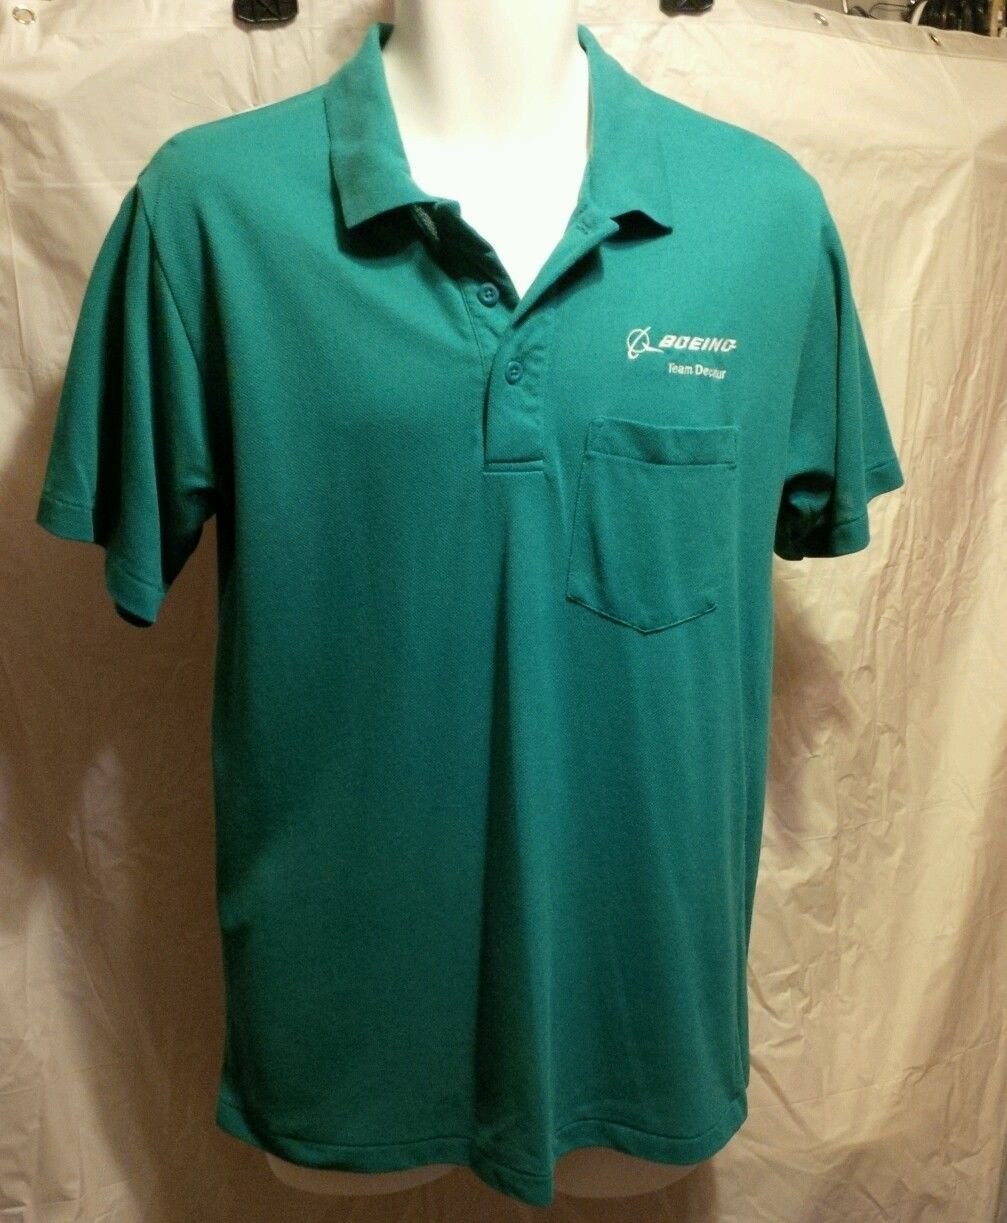 FREE SHIPPING Boeing Decatur mens polo golf shirt size small S Advent green teal embroidered